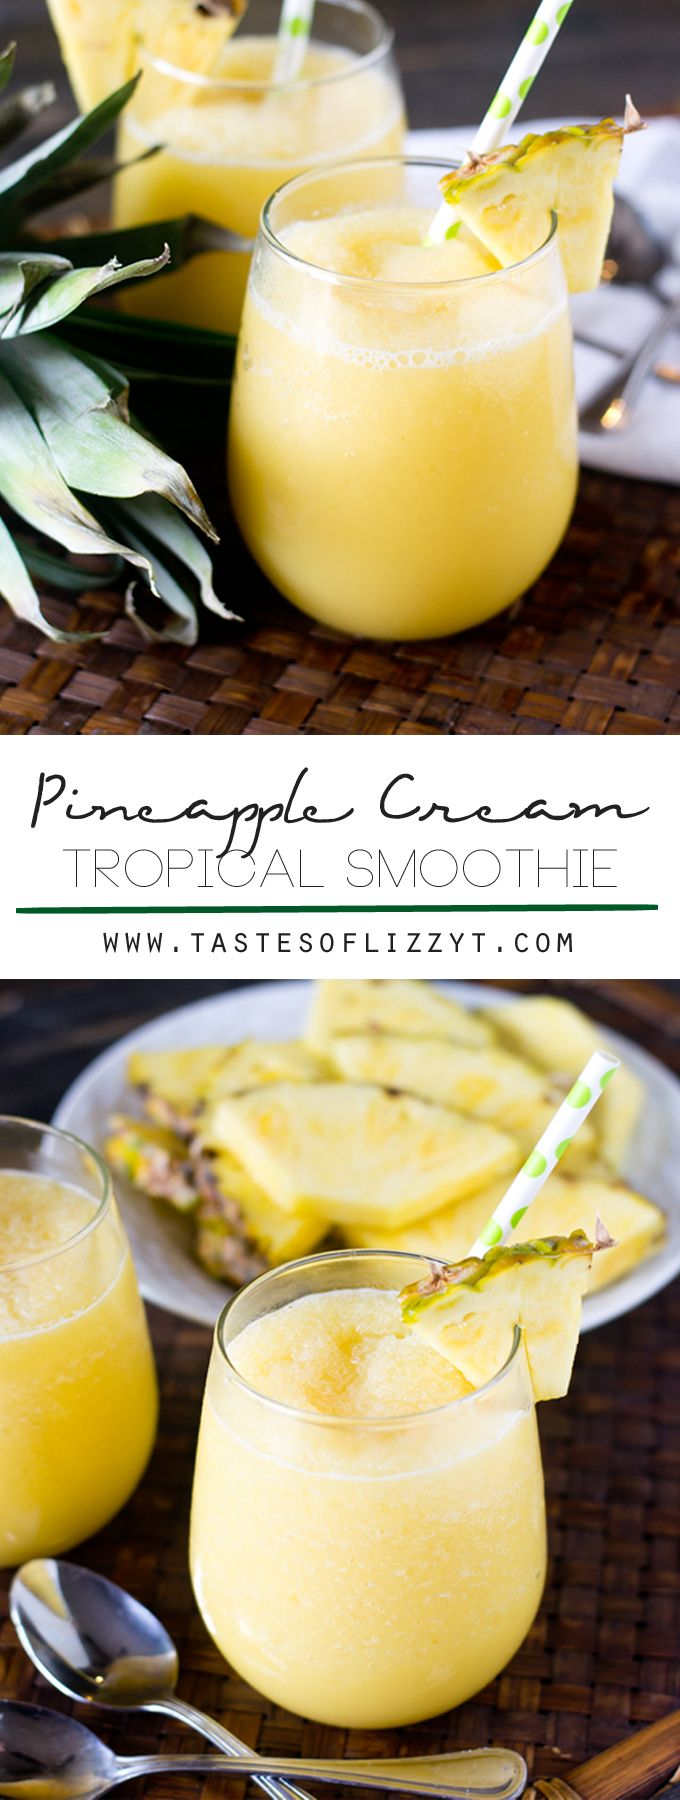 Pineapple Cream Tropical Smoothie Recipe - Tastes of Lizzy T. Sweet, creamy and tangy, this Pineapple Cream Tropical Smoothie with pineapple and a hint of orange is sure to refresh you on a hot summer day. It's dairy free and has no added sugar!